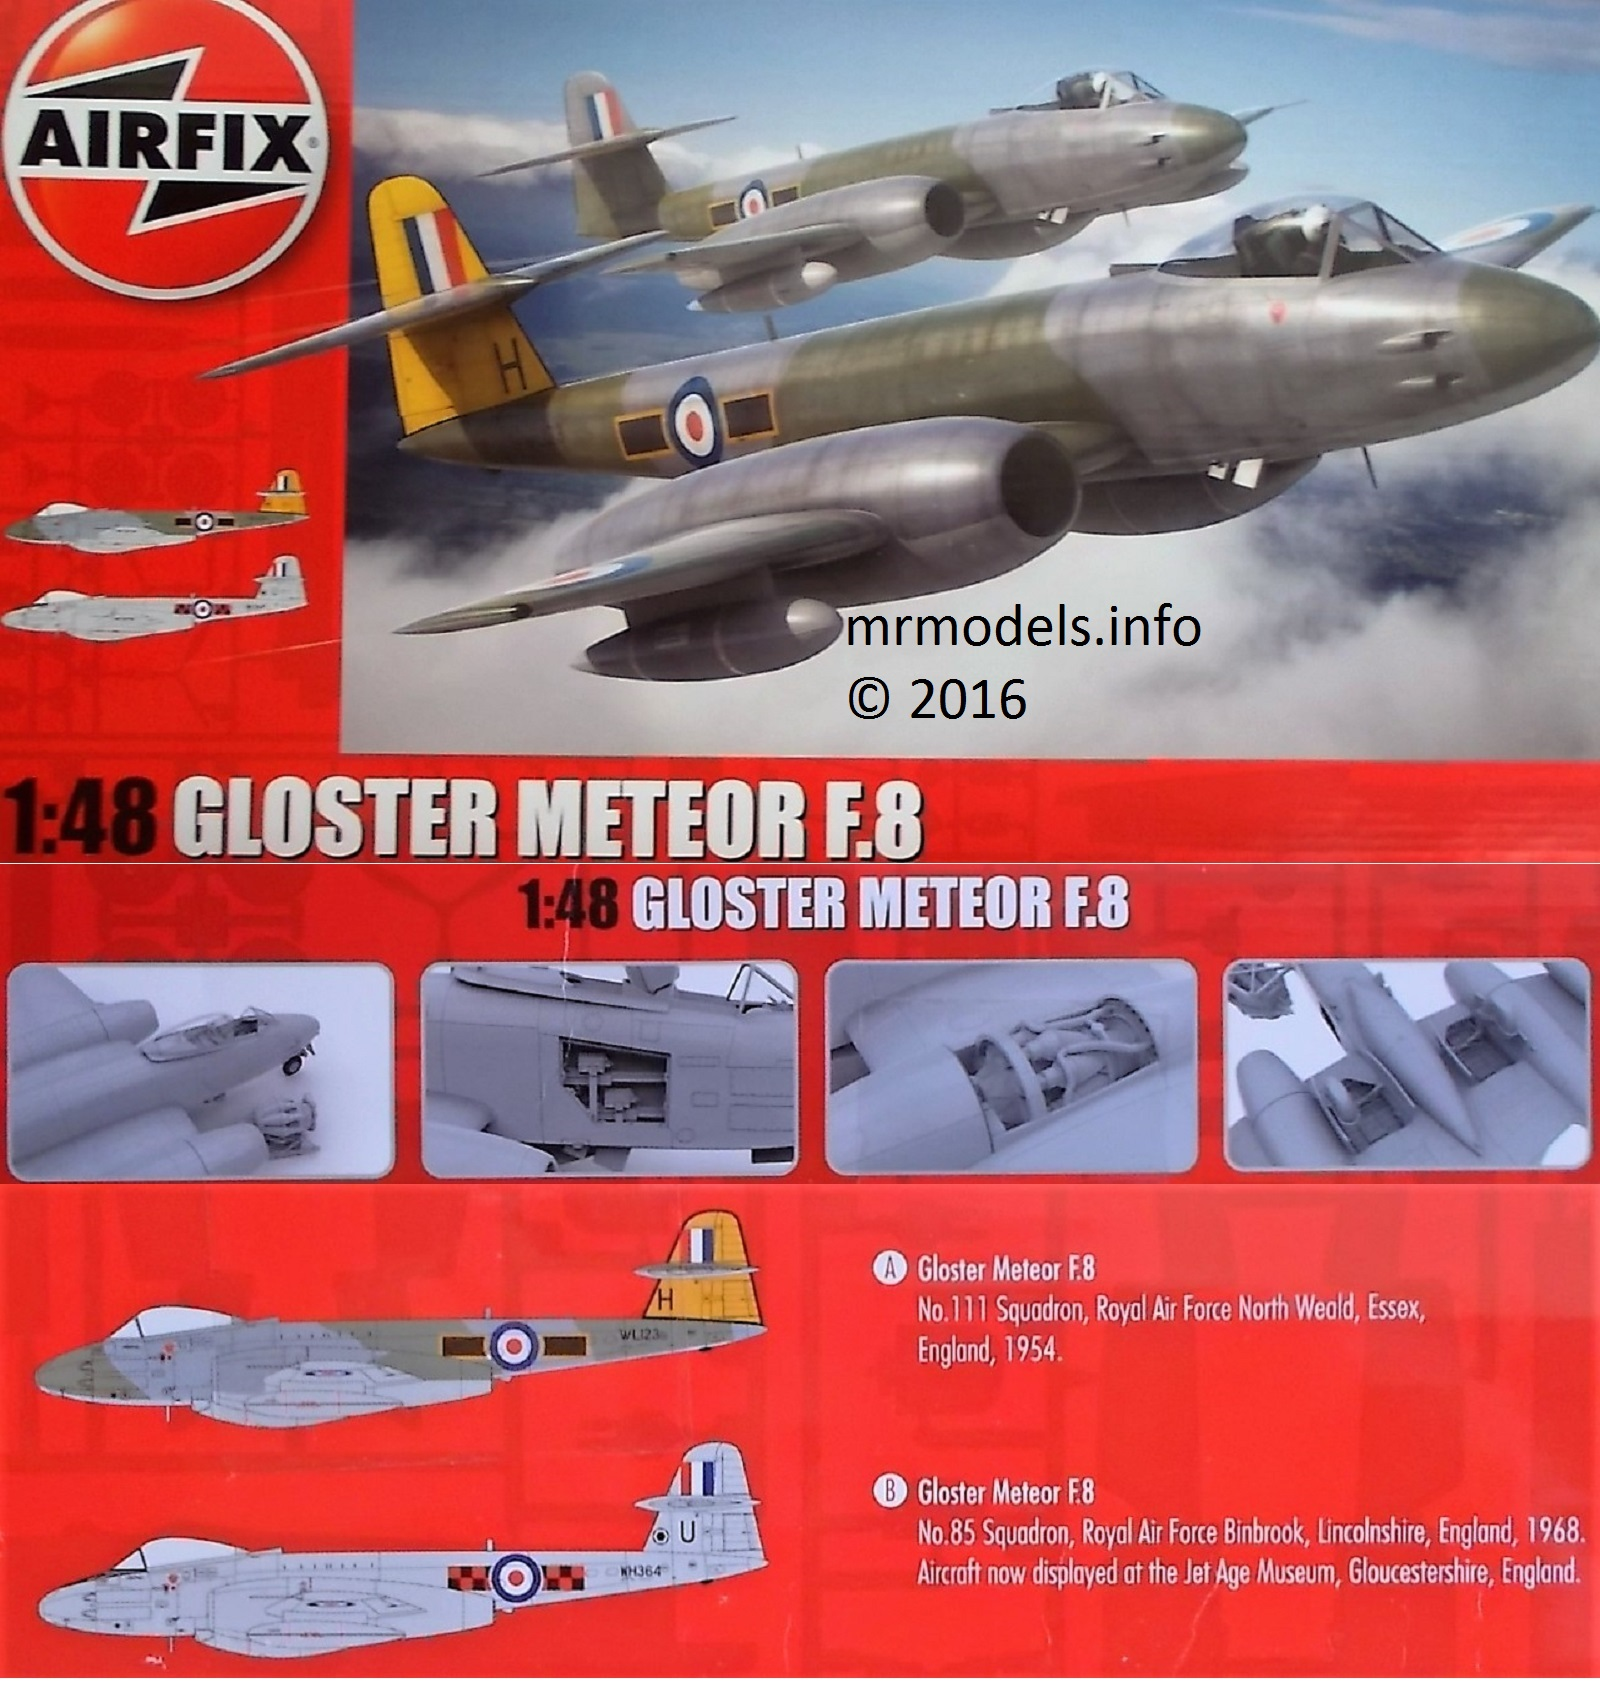 Airfix Gloster Meteor F.8